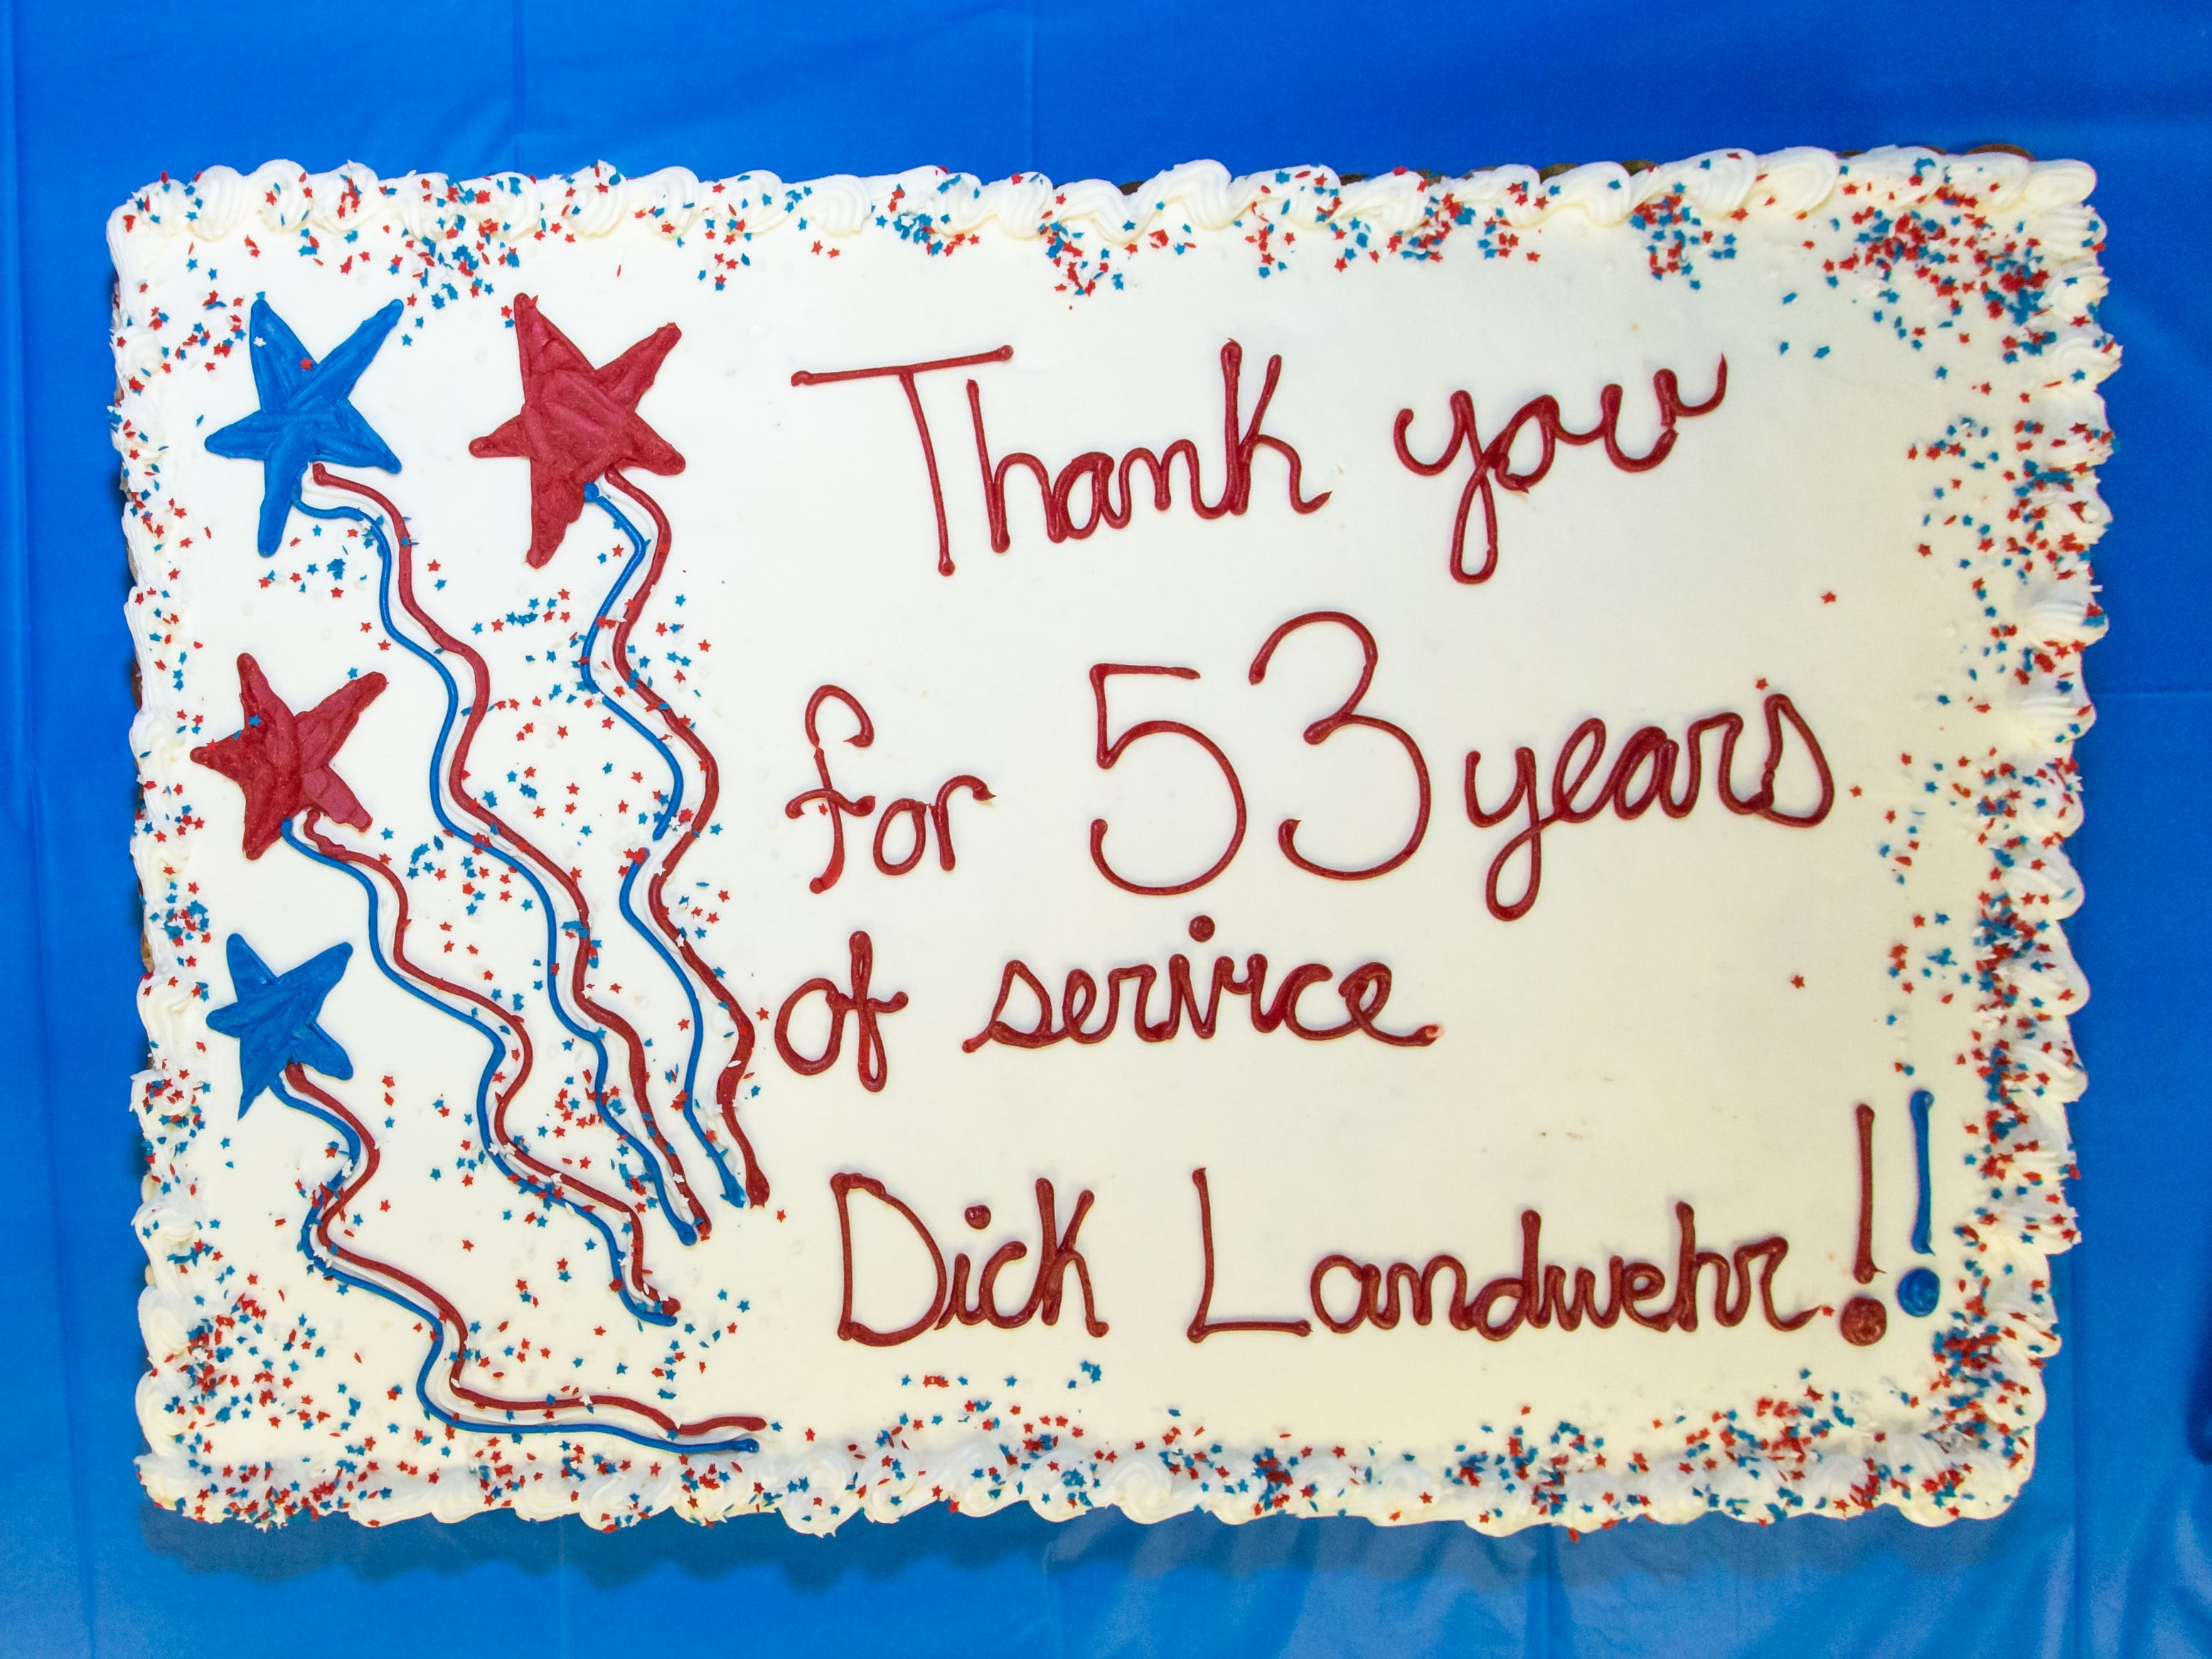 A cake is decorated to celebrate Hartland Village Board trustee Richard Landwehr's 53 years of service during his retirement reception on Monday, April 8, 2019.